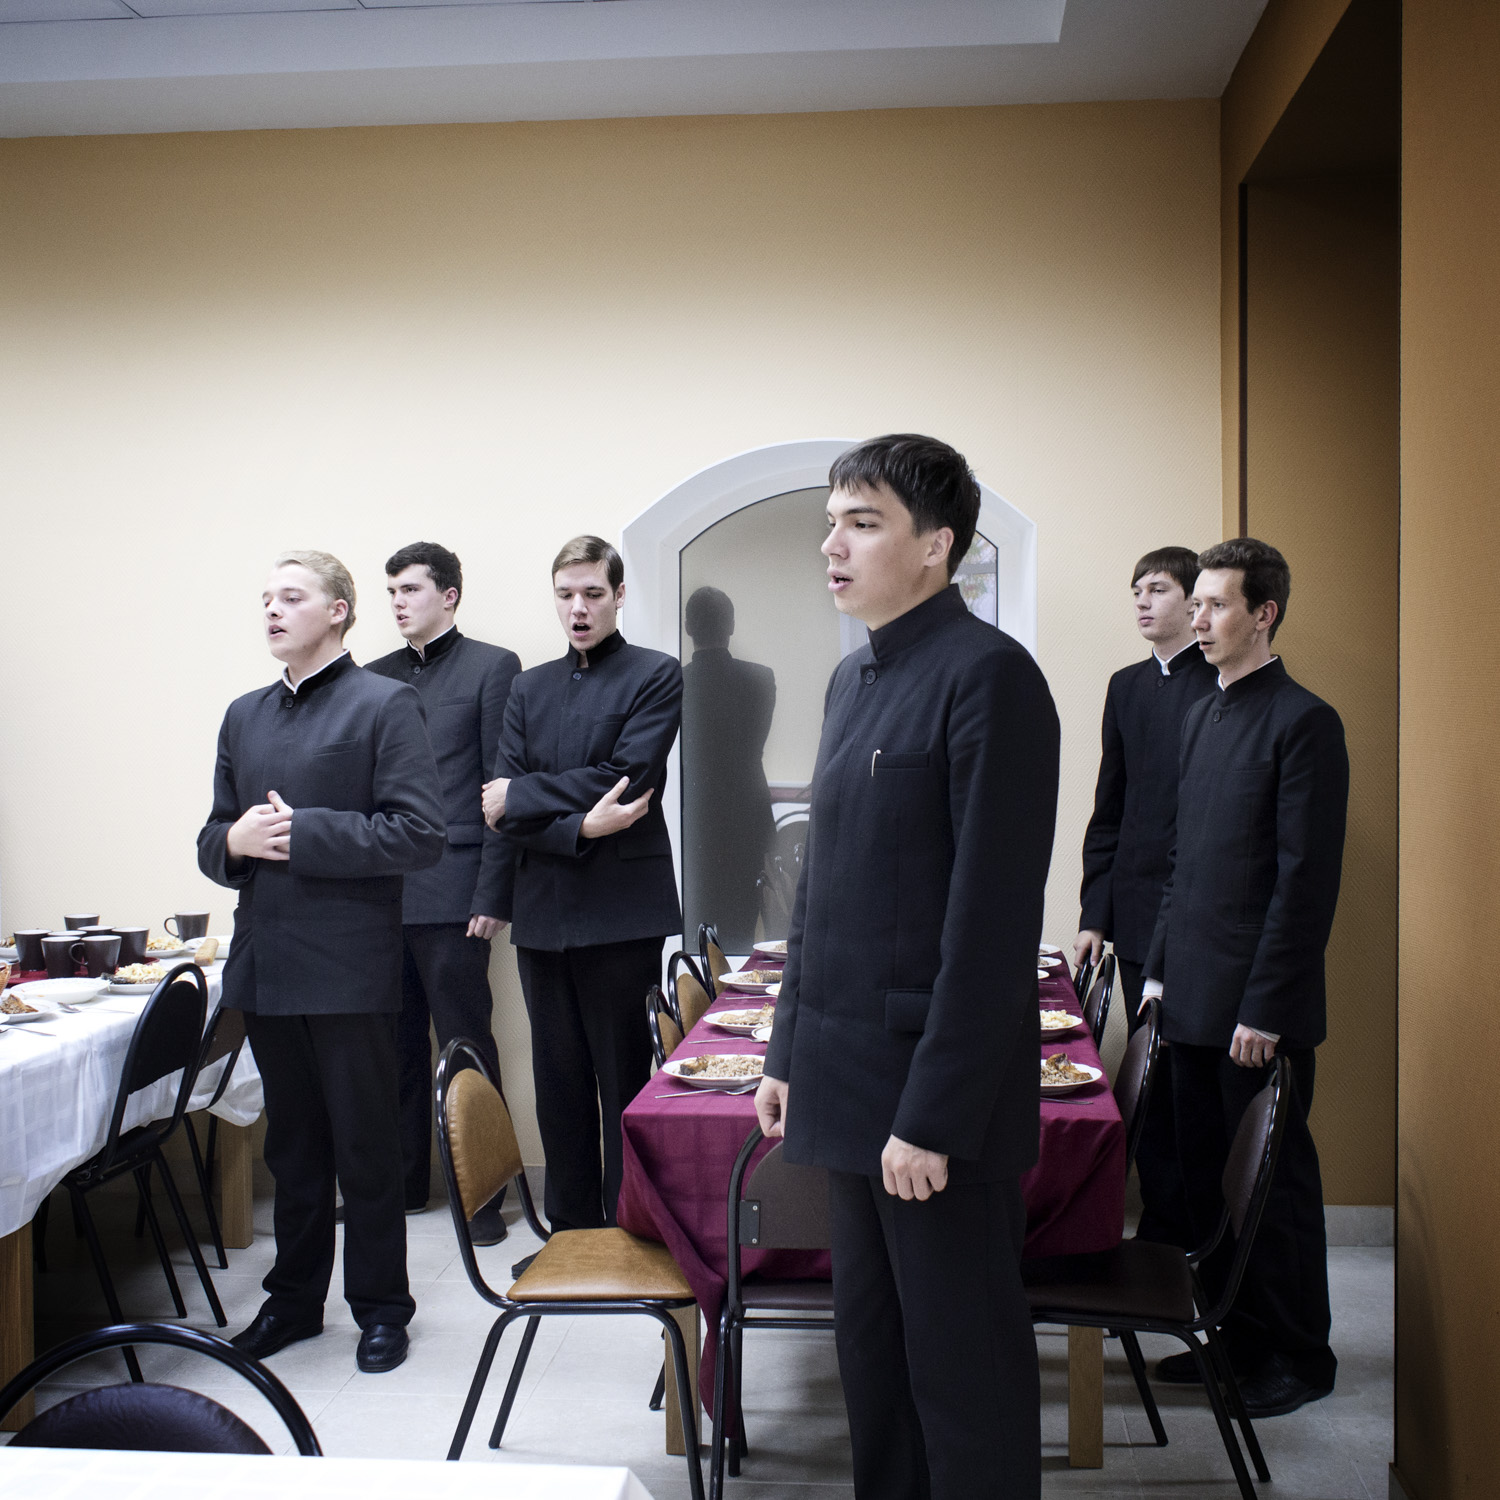 Priest students singing a prayer before lunch. When the seminary was in need of transport the local Muslim institute financed their minibus.